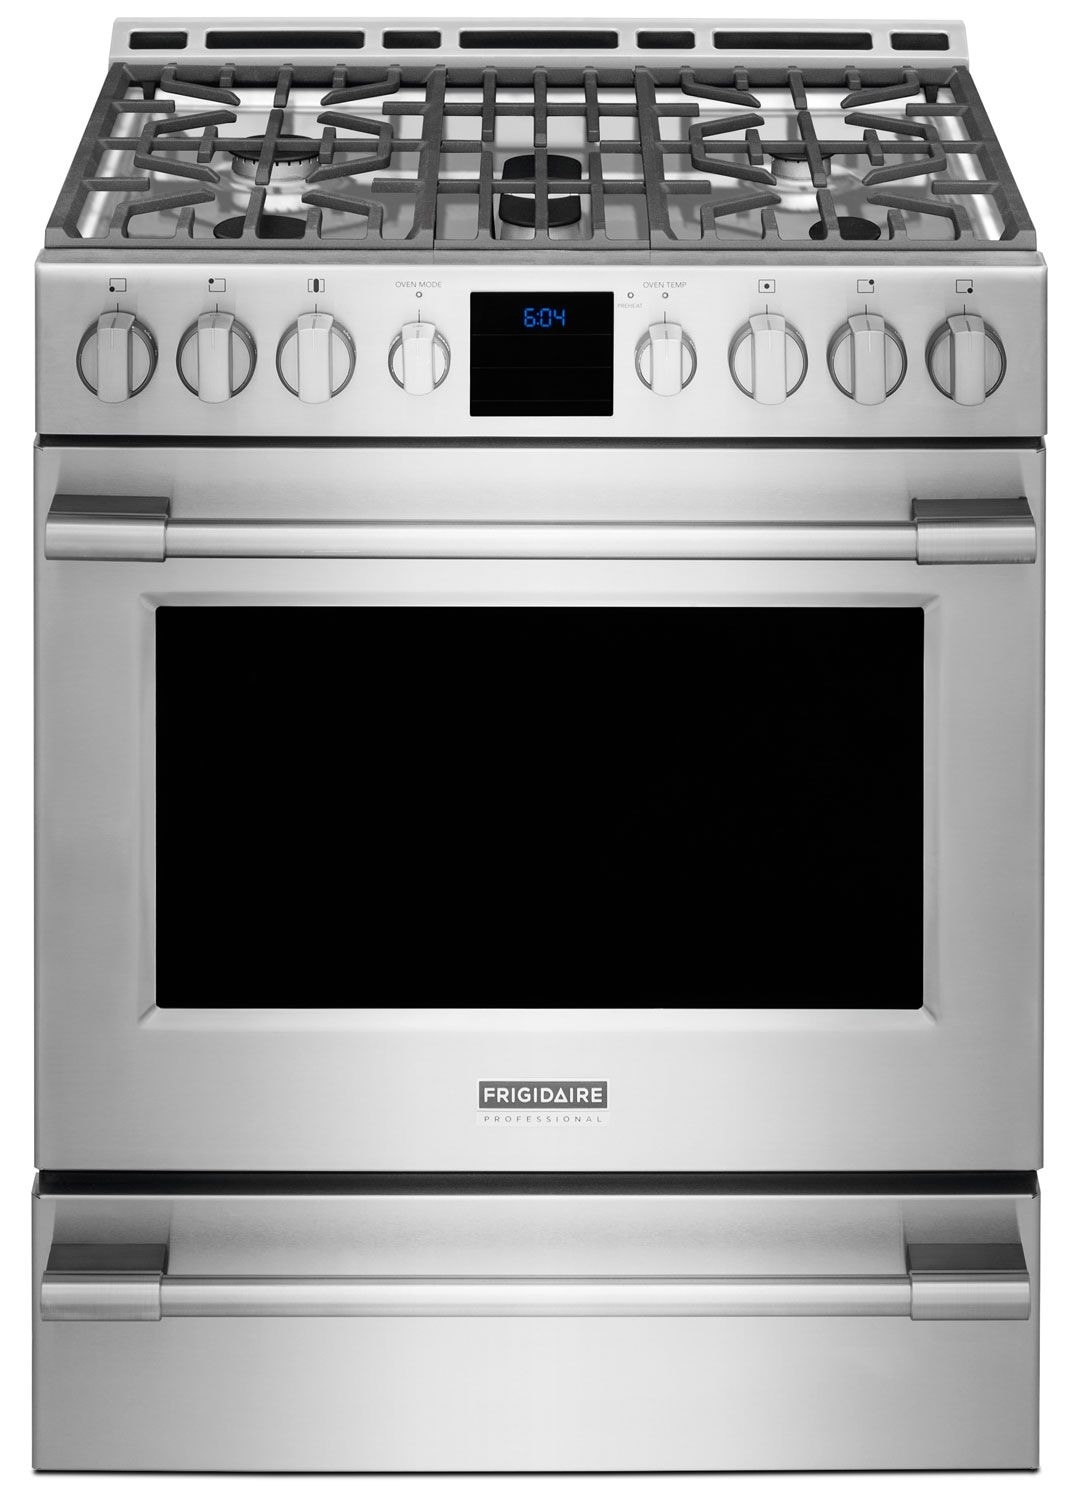 Frigidaire Professional® 30'' Front-Control Freestanding Gas Range - Stainless Steel